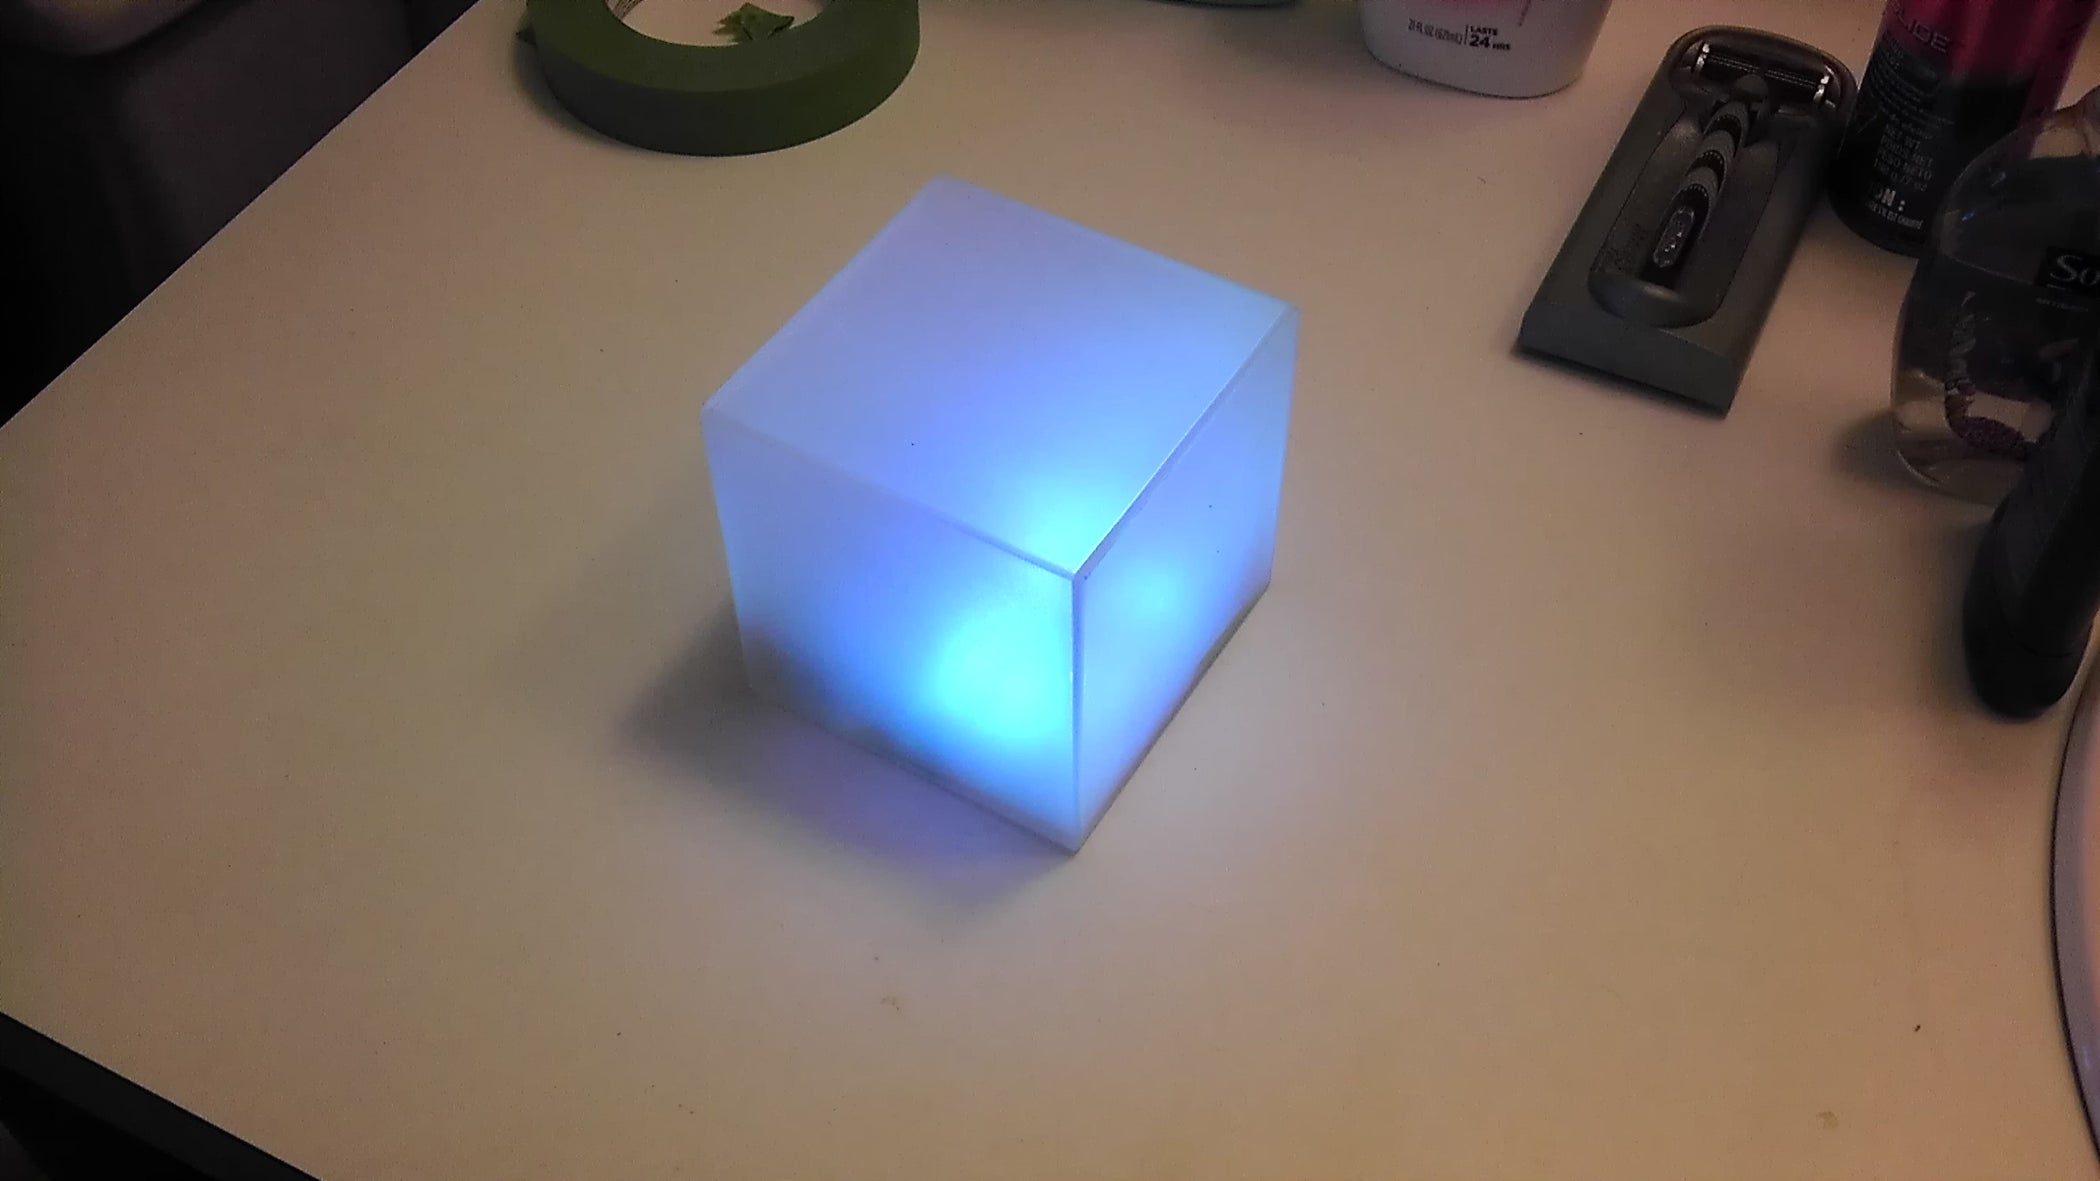 Color Changing Led Lamp 5 Steps From Radioshack Not A High Powered Simple 20ma Specetc